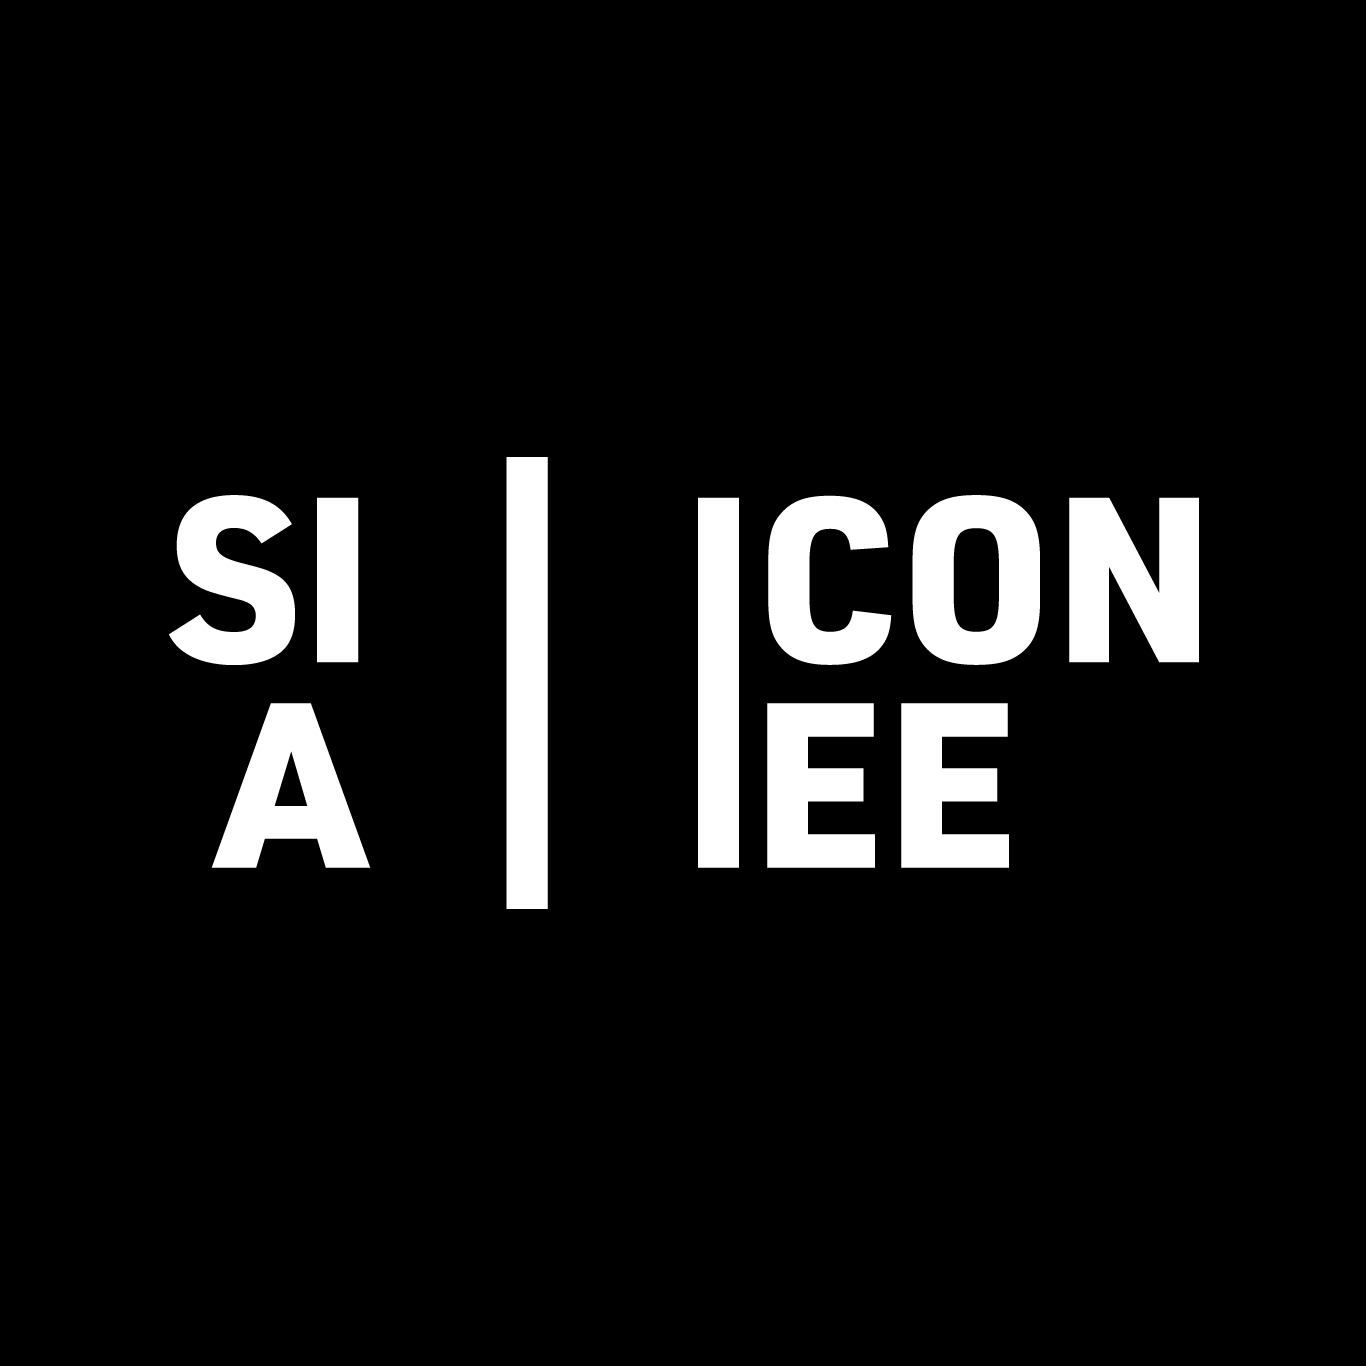 Silicon Allee Information Booth